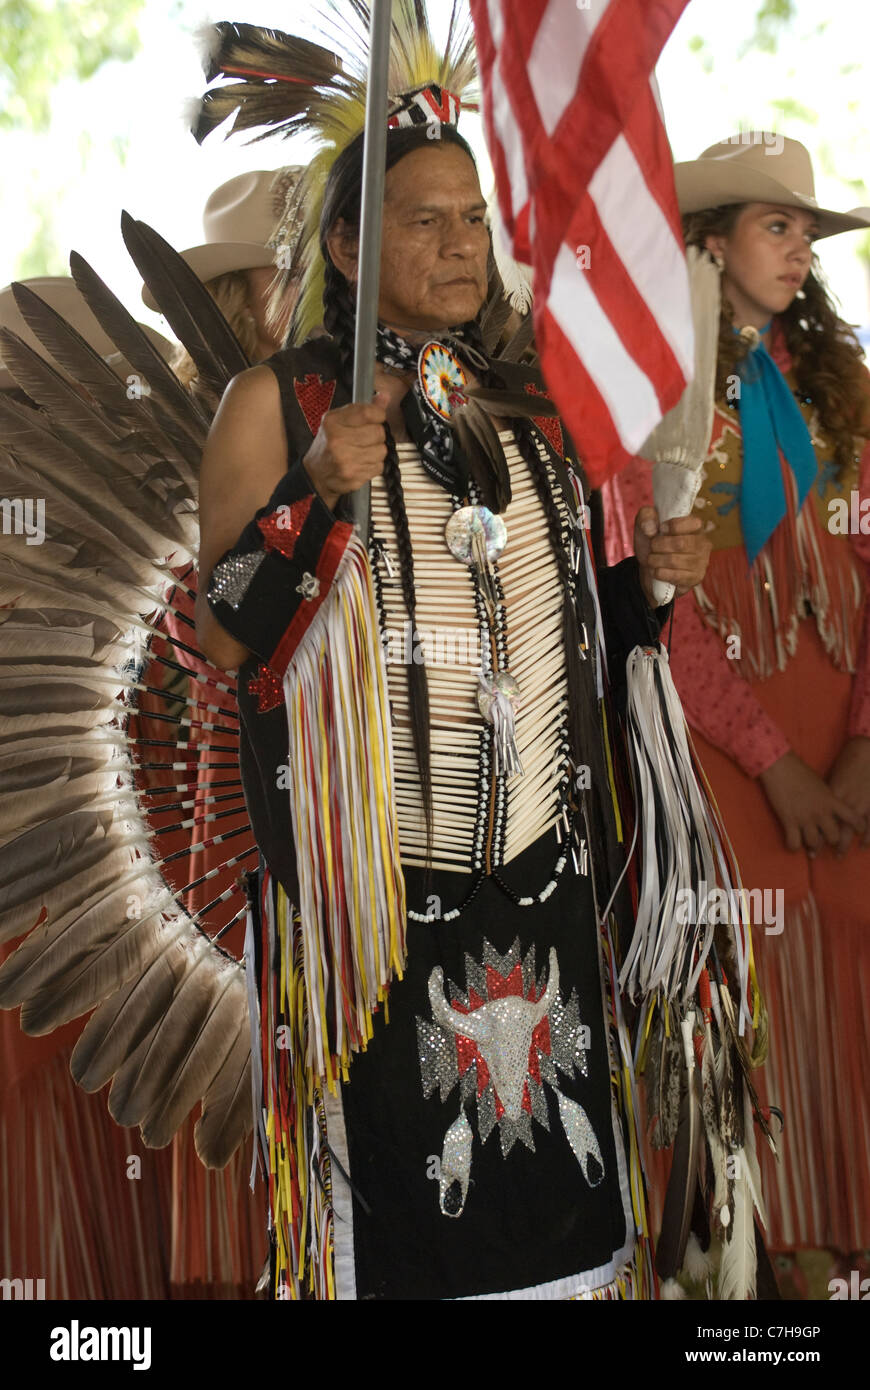 Nez Perce tribe member in full regalia at Chief Joseph Days Festival; Joseph; Oregon - Stock Image